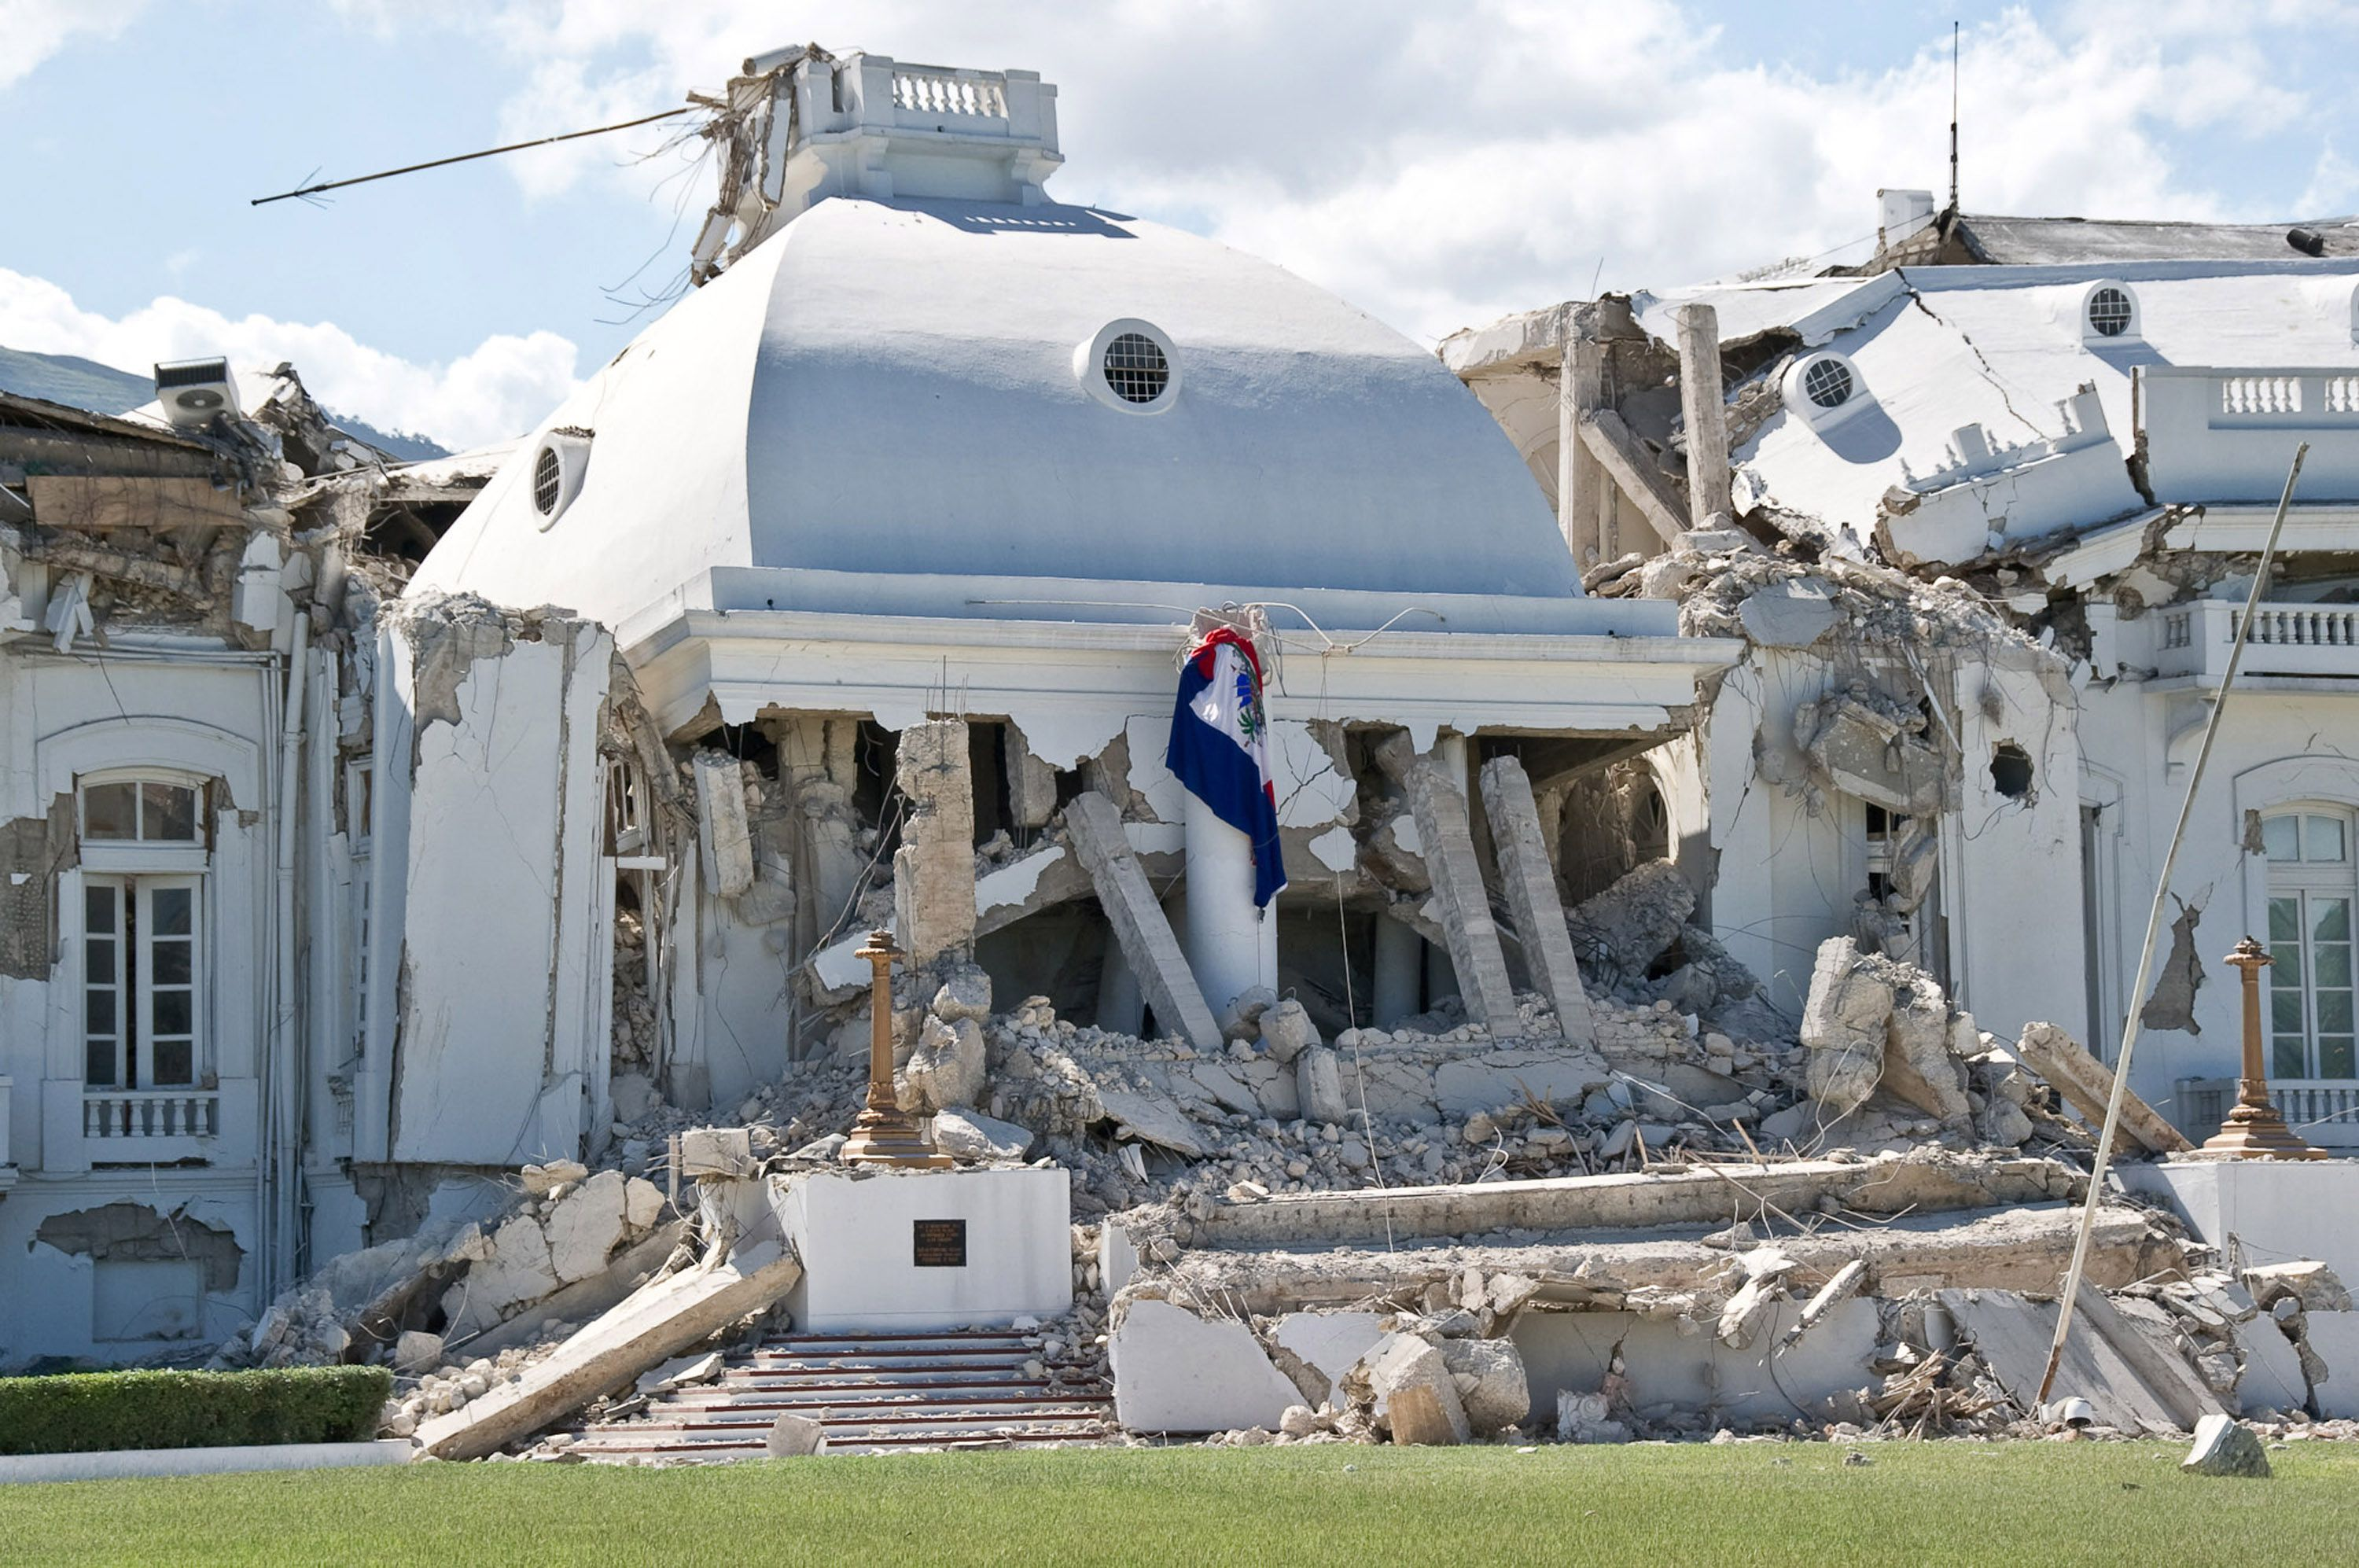 Haitian flag hangs on the ruins of a building after an earthquake